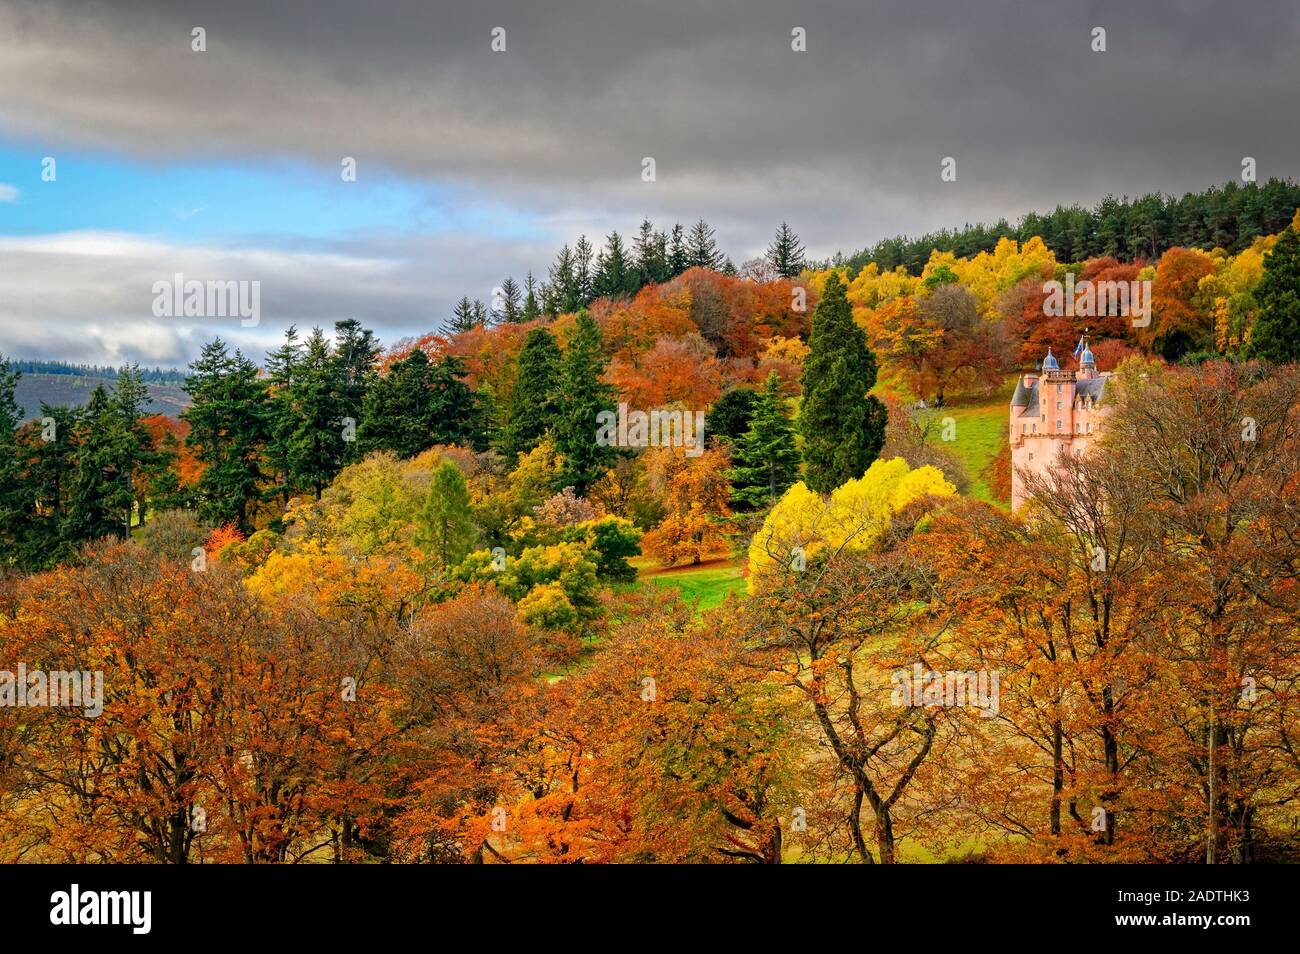 CRAIGIEVAR CASTLE ABERDEENSHIRE SCOTLAND THE PINK CASTLE SURROUNDED BY TREES IN AUTUMN COLOURS Stock Photo